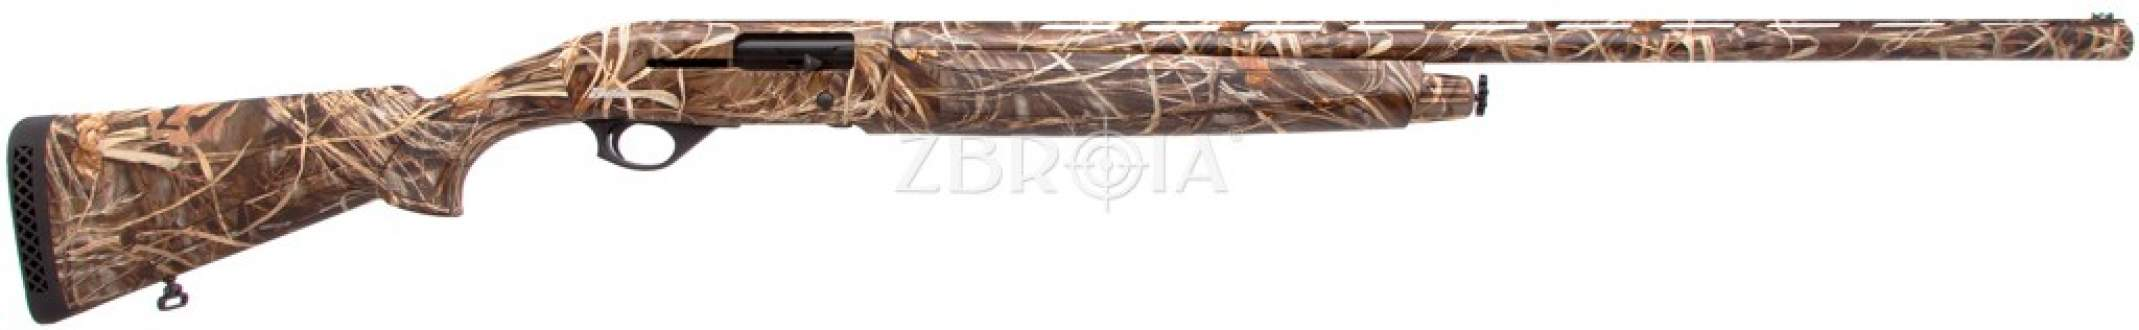 Ружье Armsan A612 C Realtree Max4 Synthetic Comouflage кал. 12/76